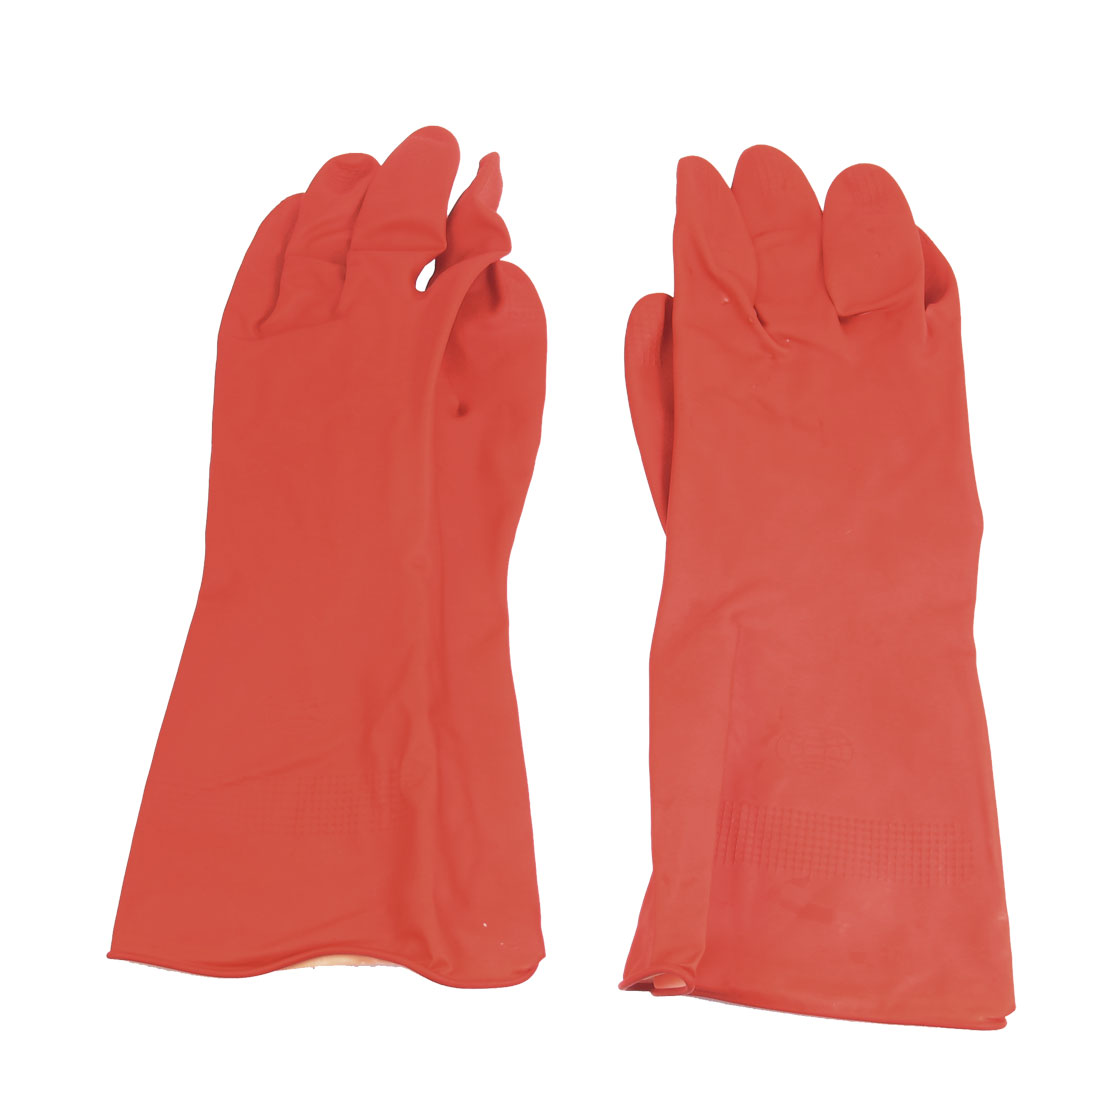 "Pair 11.8"" Length Household Washing Cleaning Protective Latex Gloves Red"